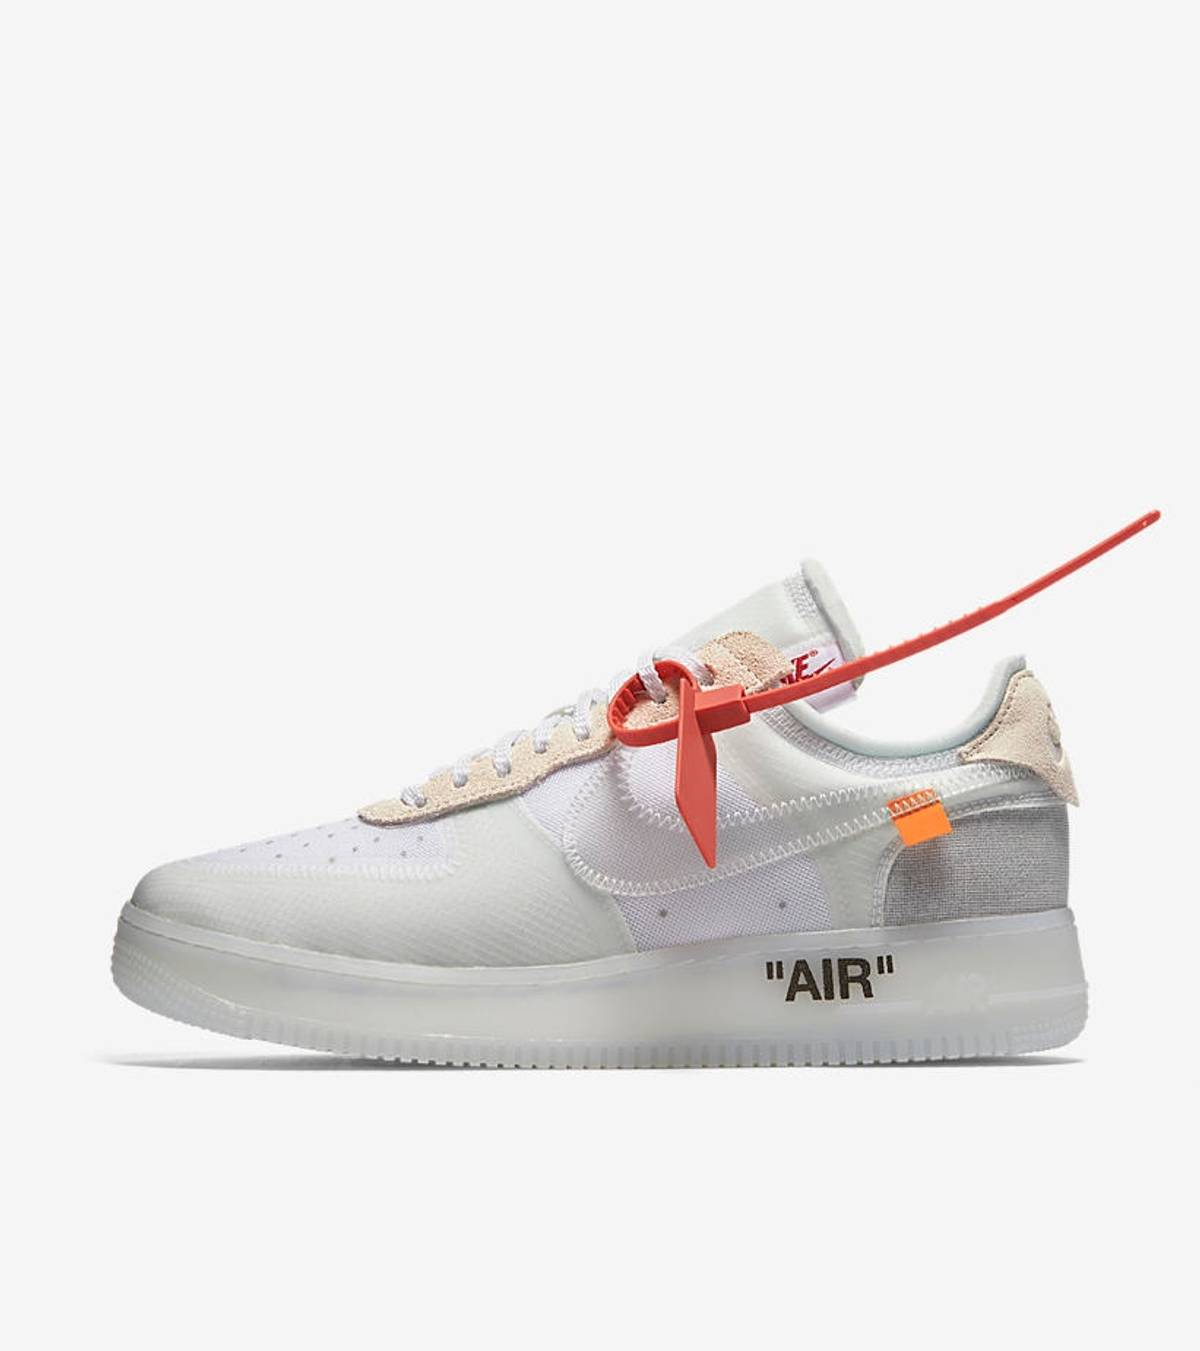 Nike × Off White Nike Air Force 1 Low CO Virgil Abloh Size 6.5 $514